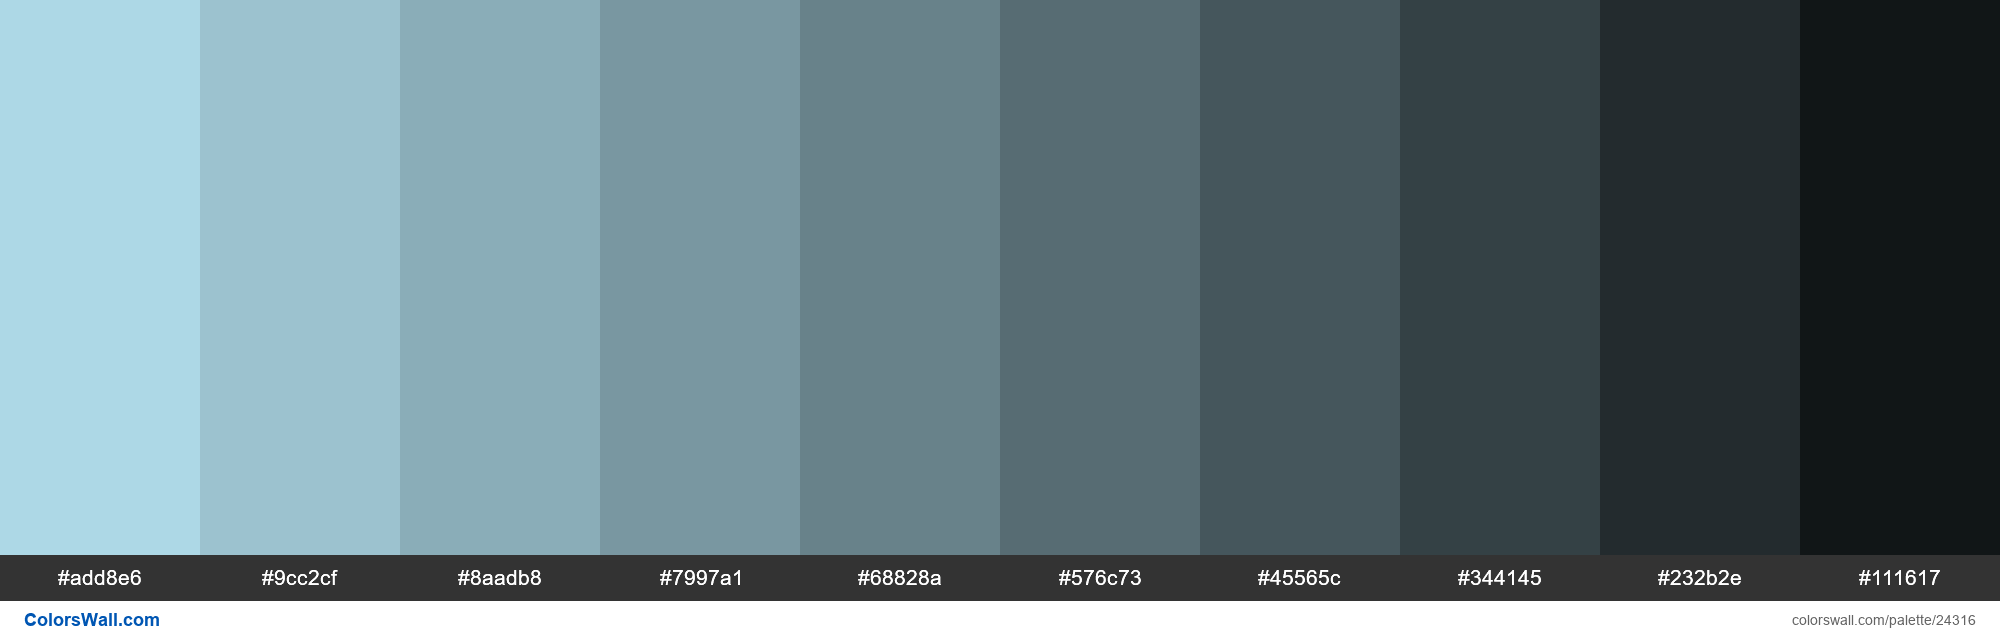 Shades of Light Blue #ADD8E6 hex color - #24316